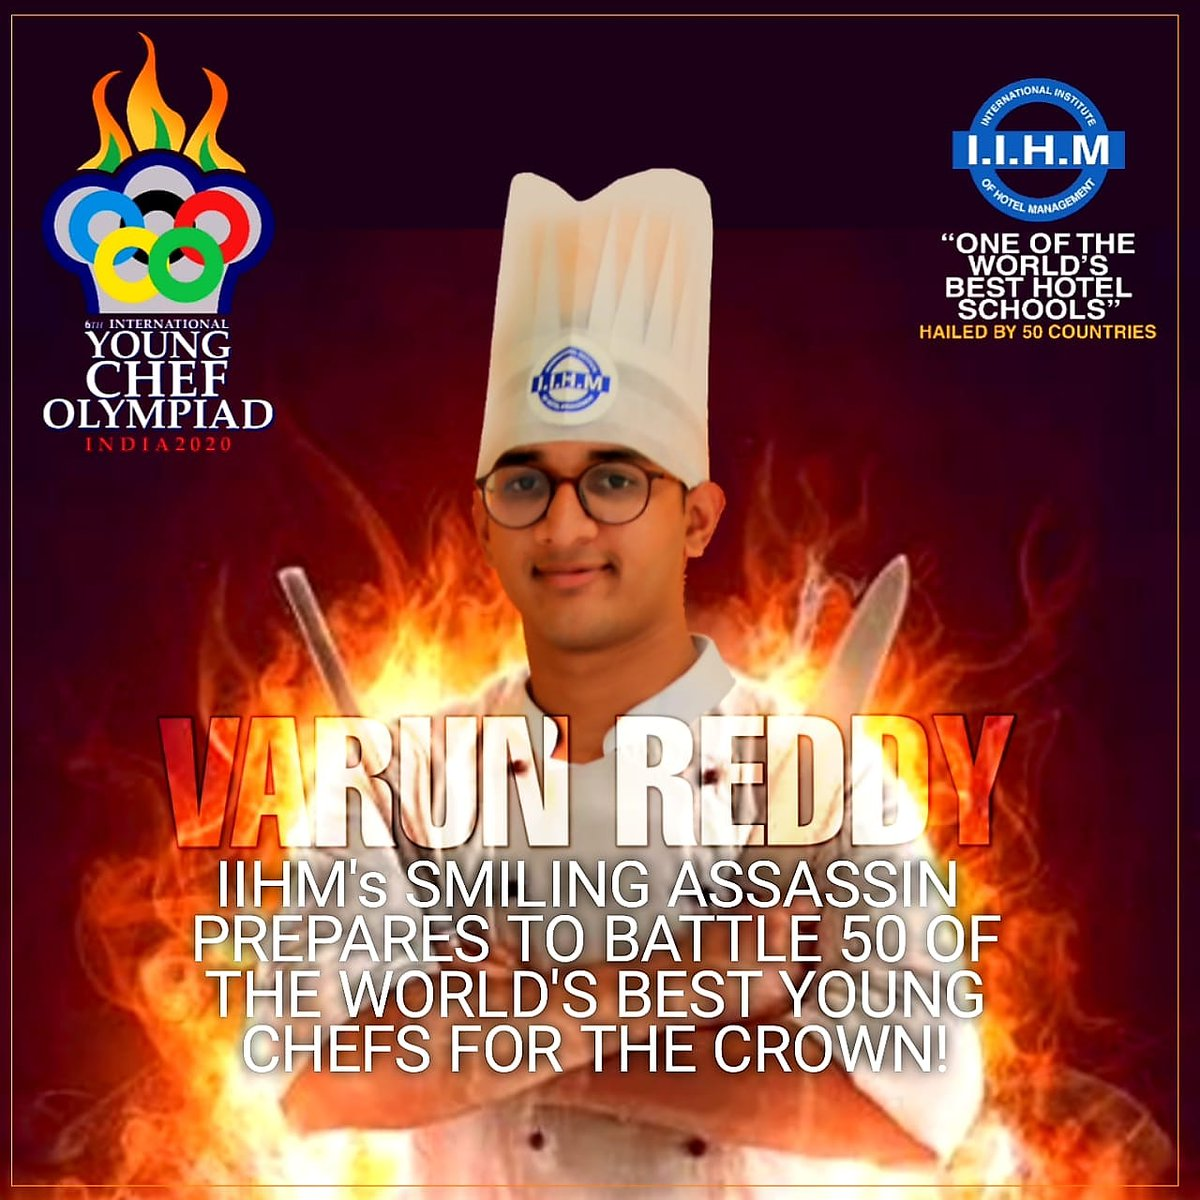 @ycolympiad @subornobose @IIHMHOTELSCHOOL's smiling assassin prepares for battle Varun Reddy,Our Culinary prodigy,here to dominate the Global kitchen with full power  days until he fights his way to the golden toque of victory #IIHMBest3Years #battleforthebest #chefslifepic.twitter.com/ik8gBmv5et